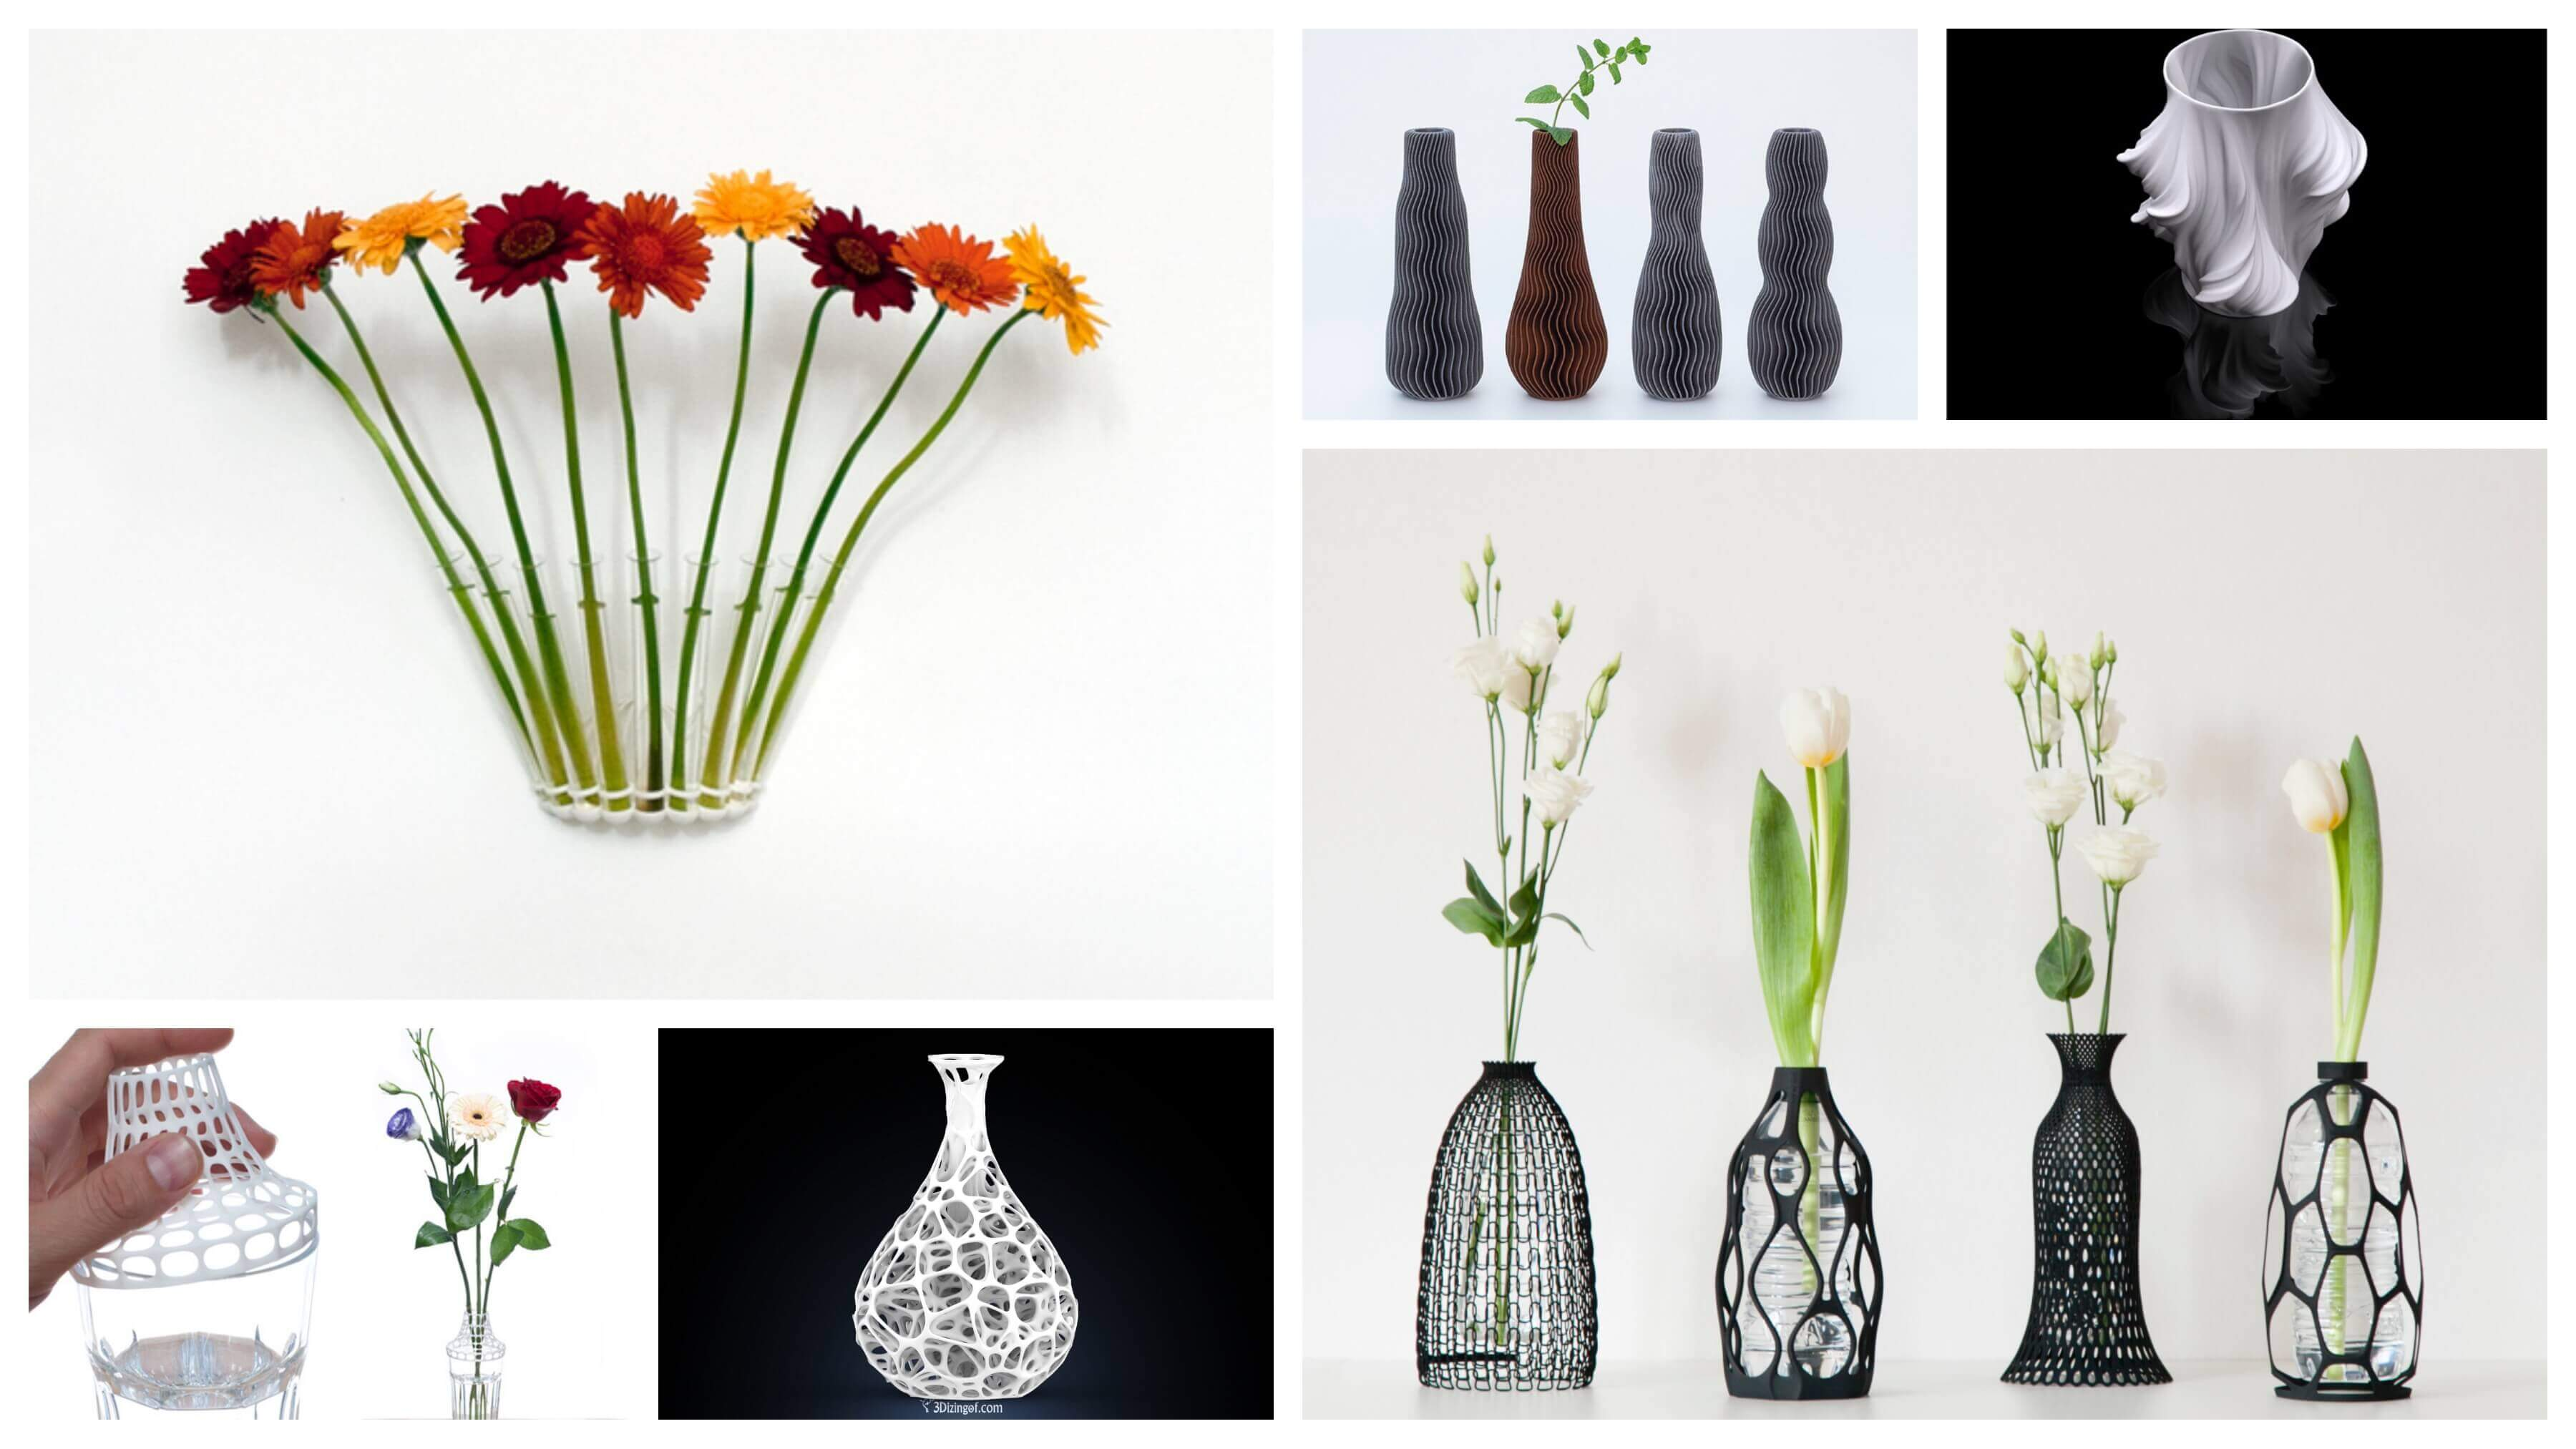 5+ Adorable 3D Printed Vase Designs | All3DP